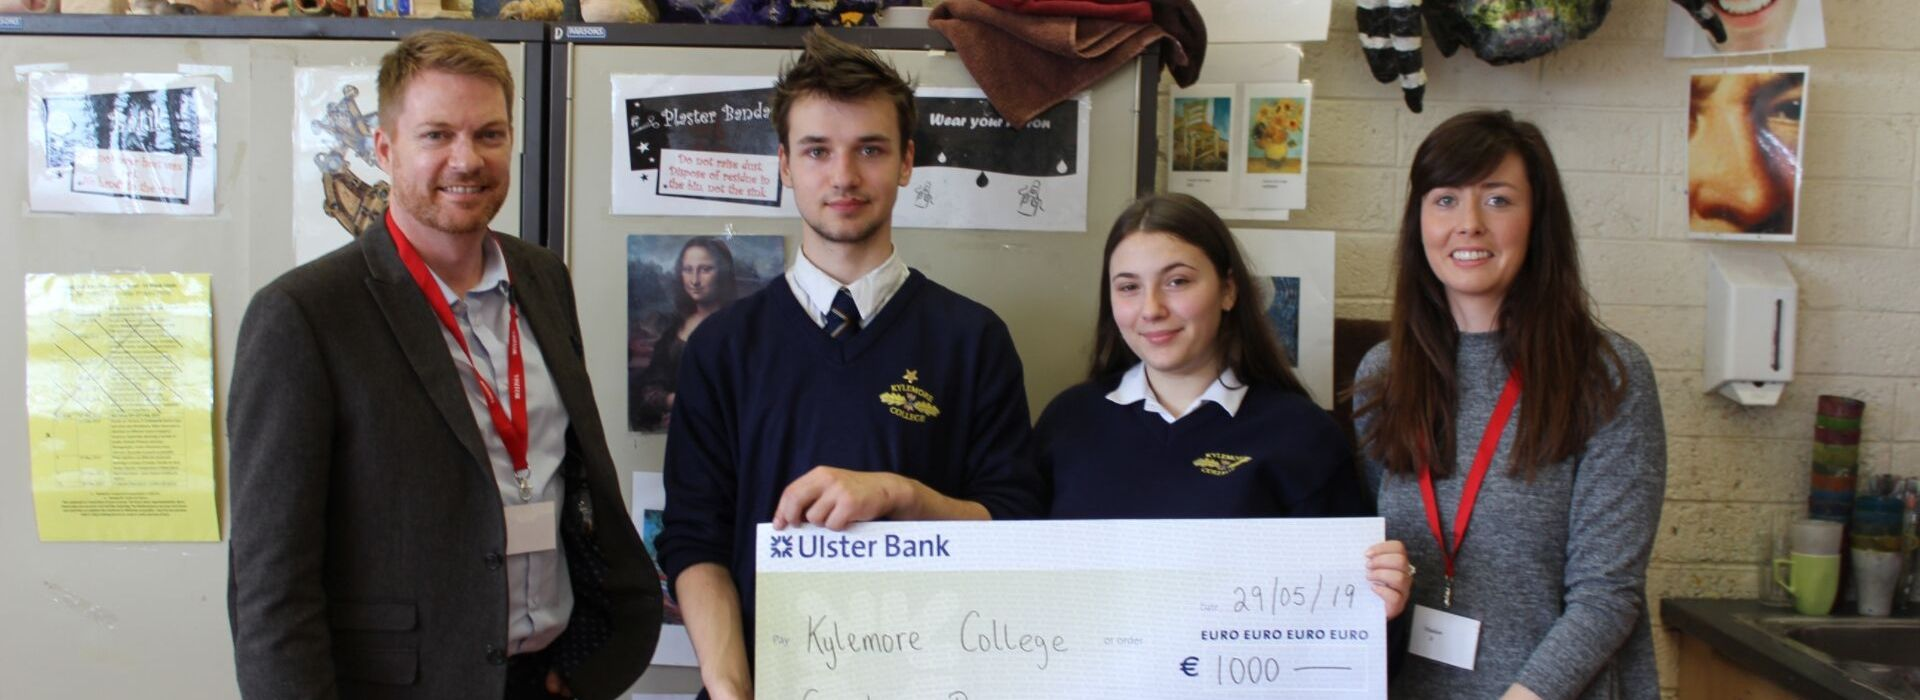 Griffith College Schools Liaison Officer presents a bursary check to students at Kylemore College